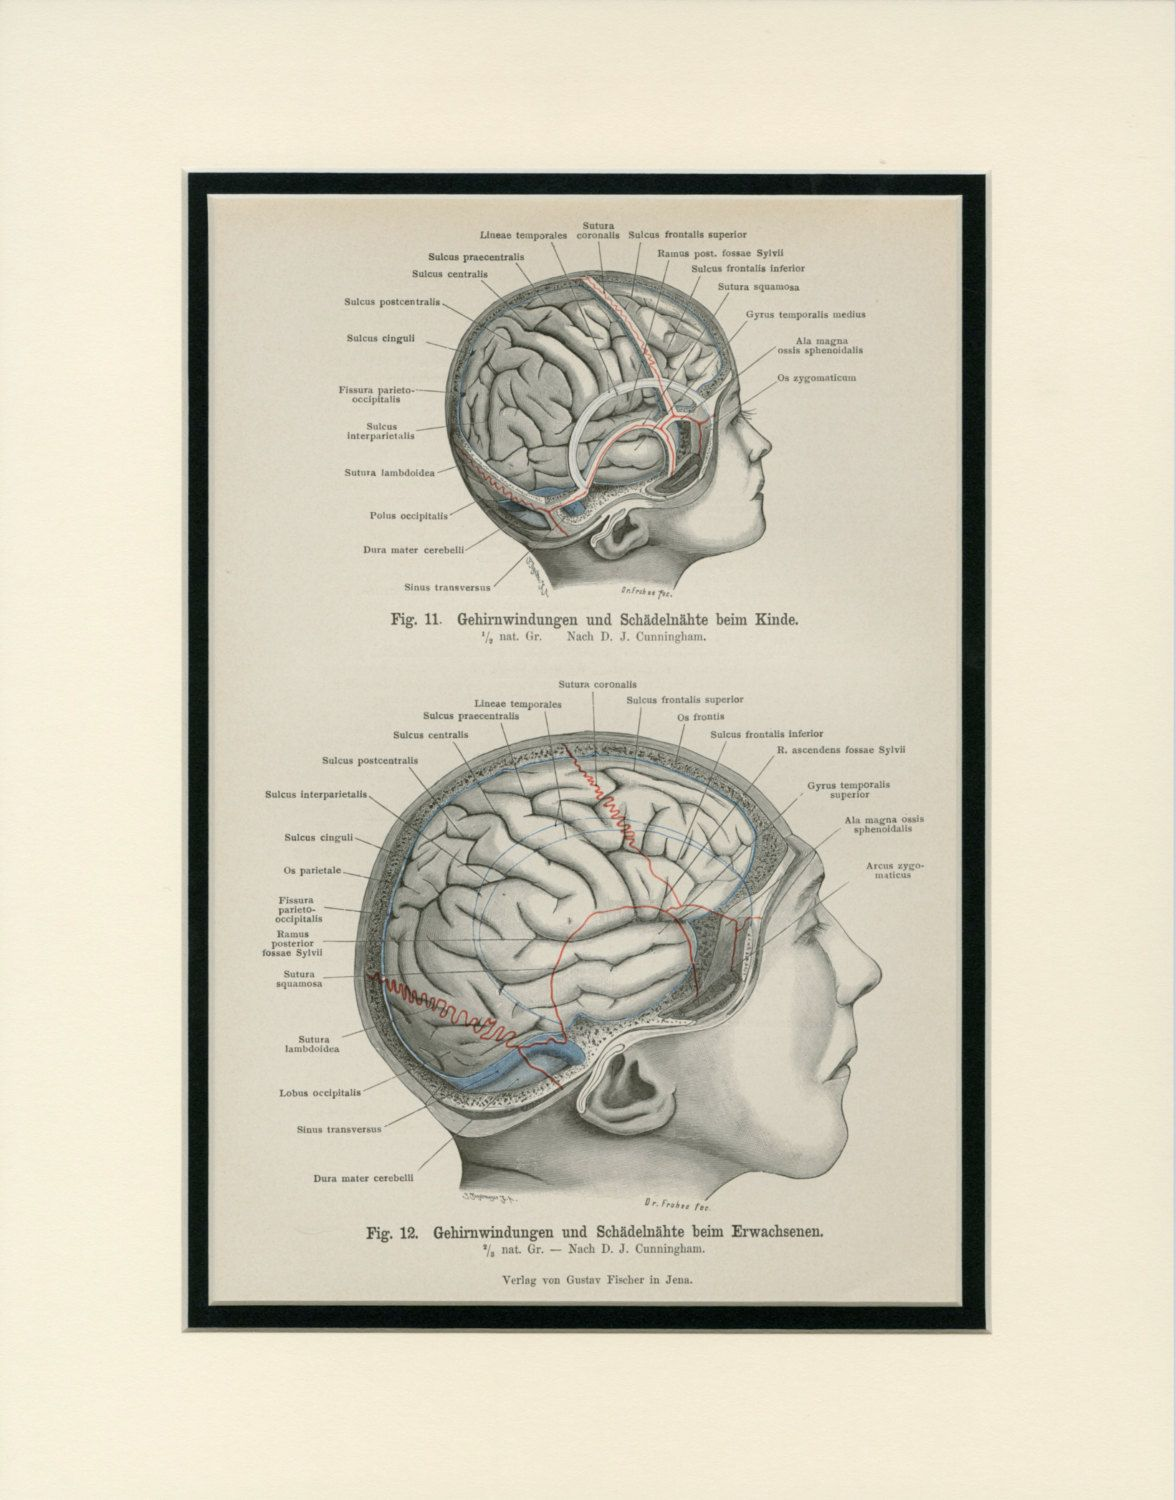 Adult brain and child brain diagram convolutions and skull seams c adult brain and child brain diagram convolutions and skull seams c1890 antique engraving matted 11x14 wall art home decor by antiqueprintboutique on ccuart Image collections